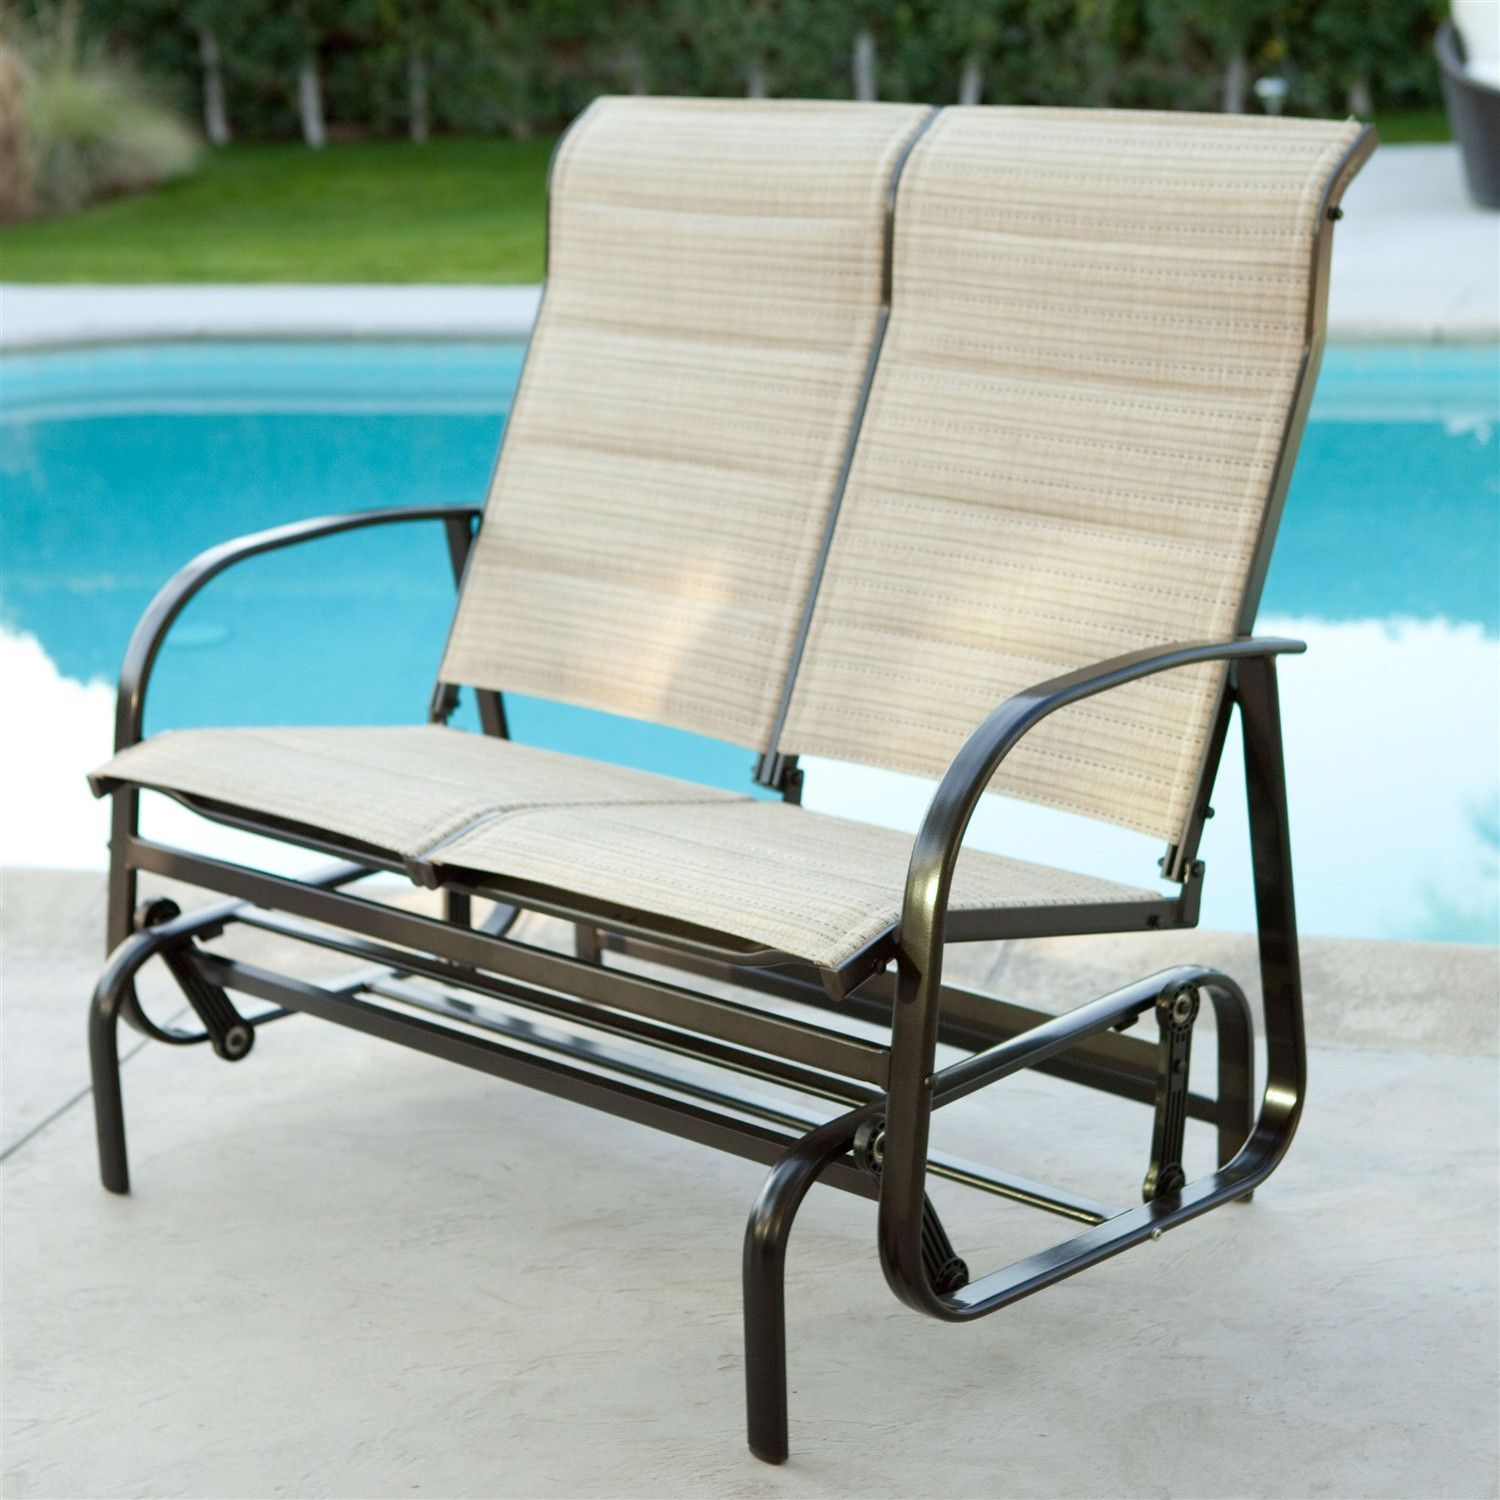 Outdoor Glider Patio Chair Loveseat With Padded Sling Seats Regarding Padded Sling Double Glider Benches (View 18 of 25)